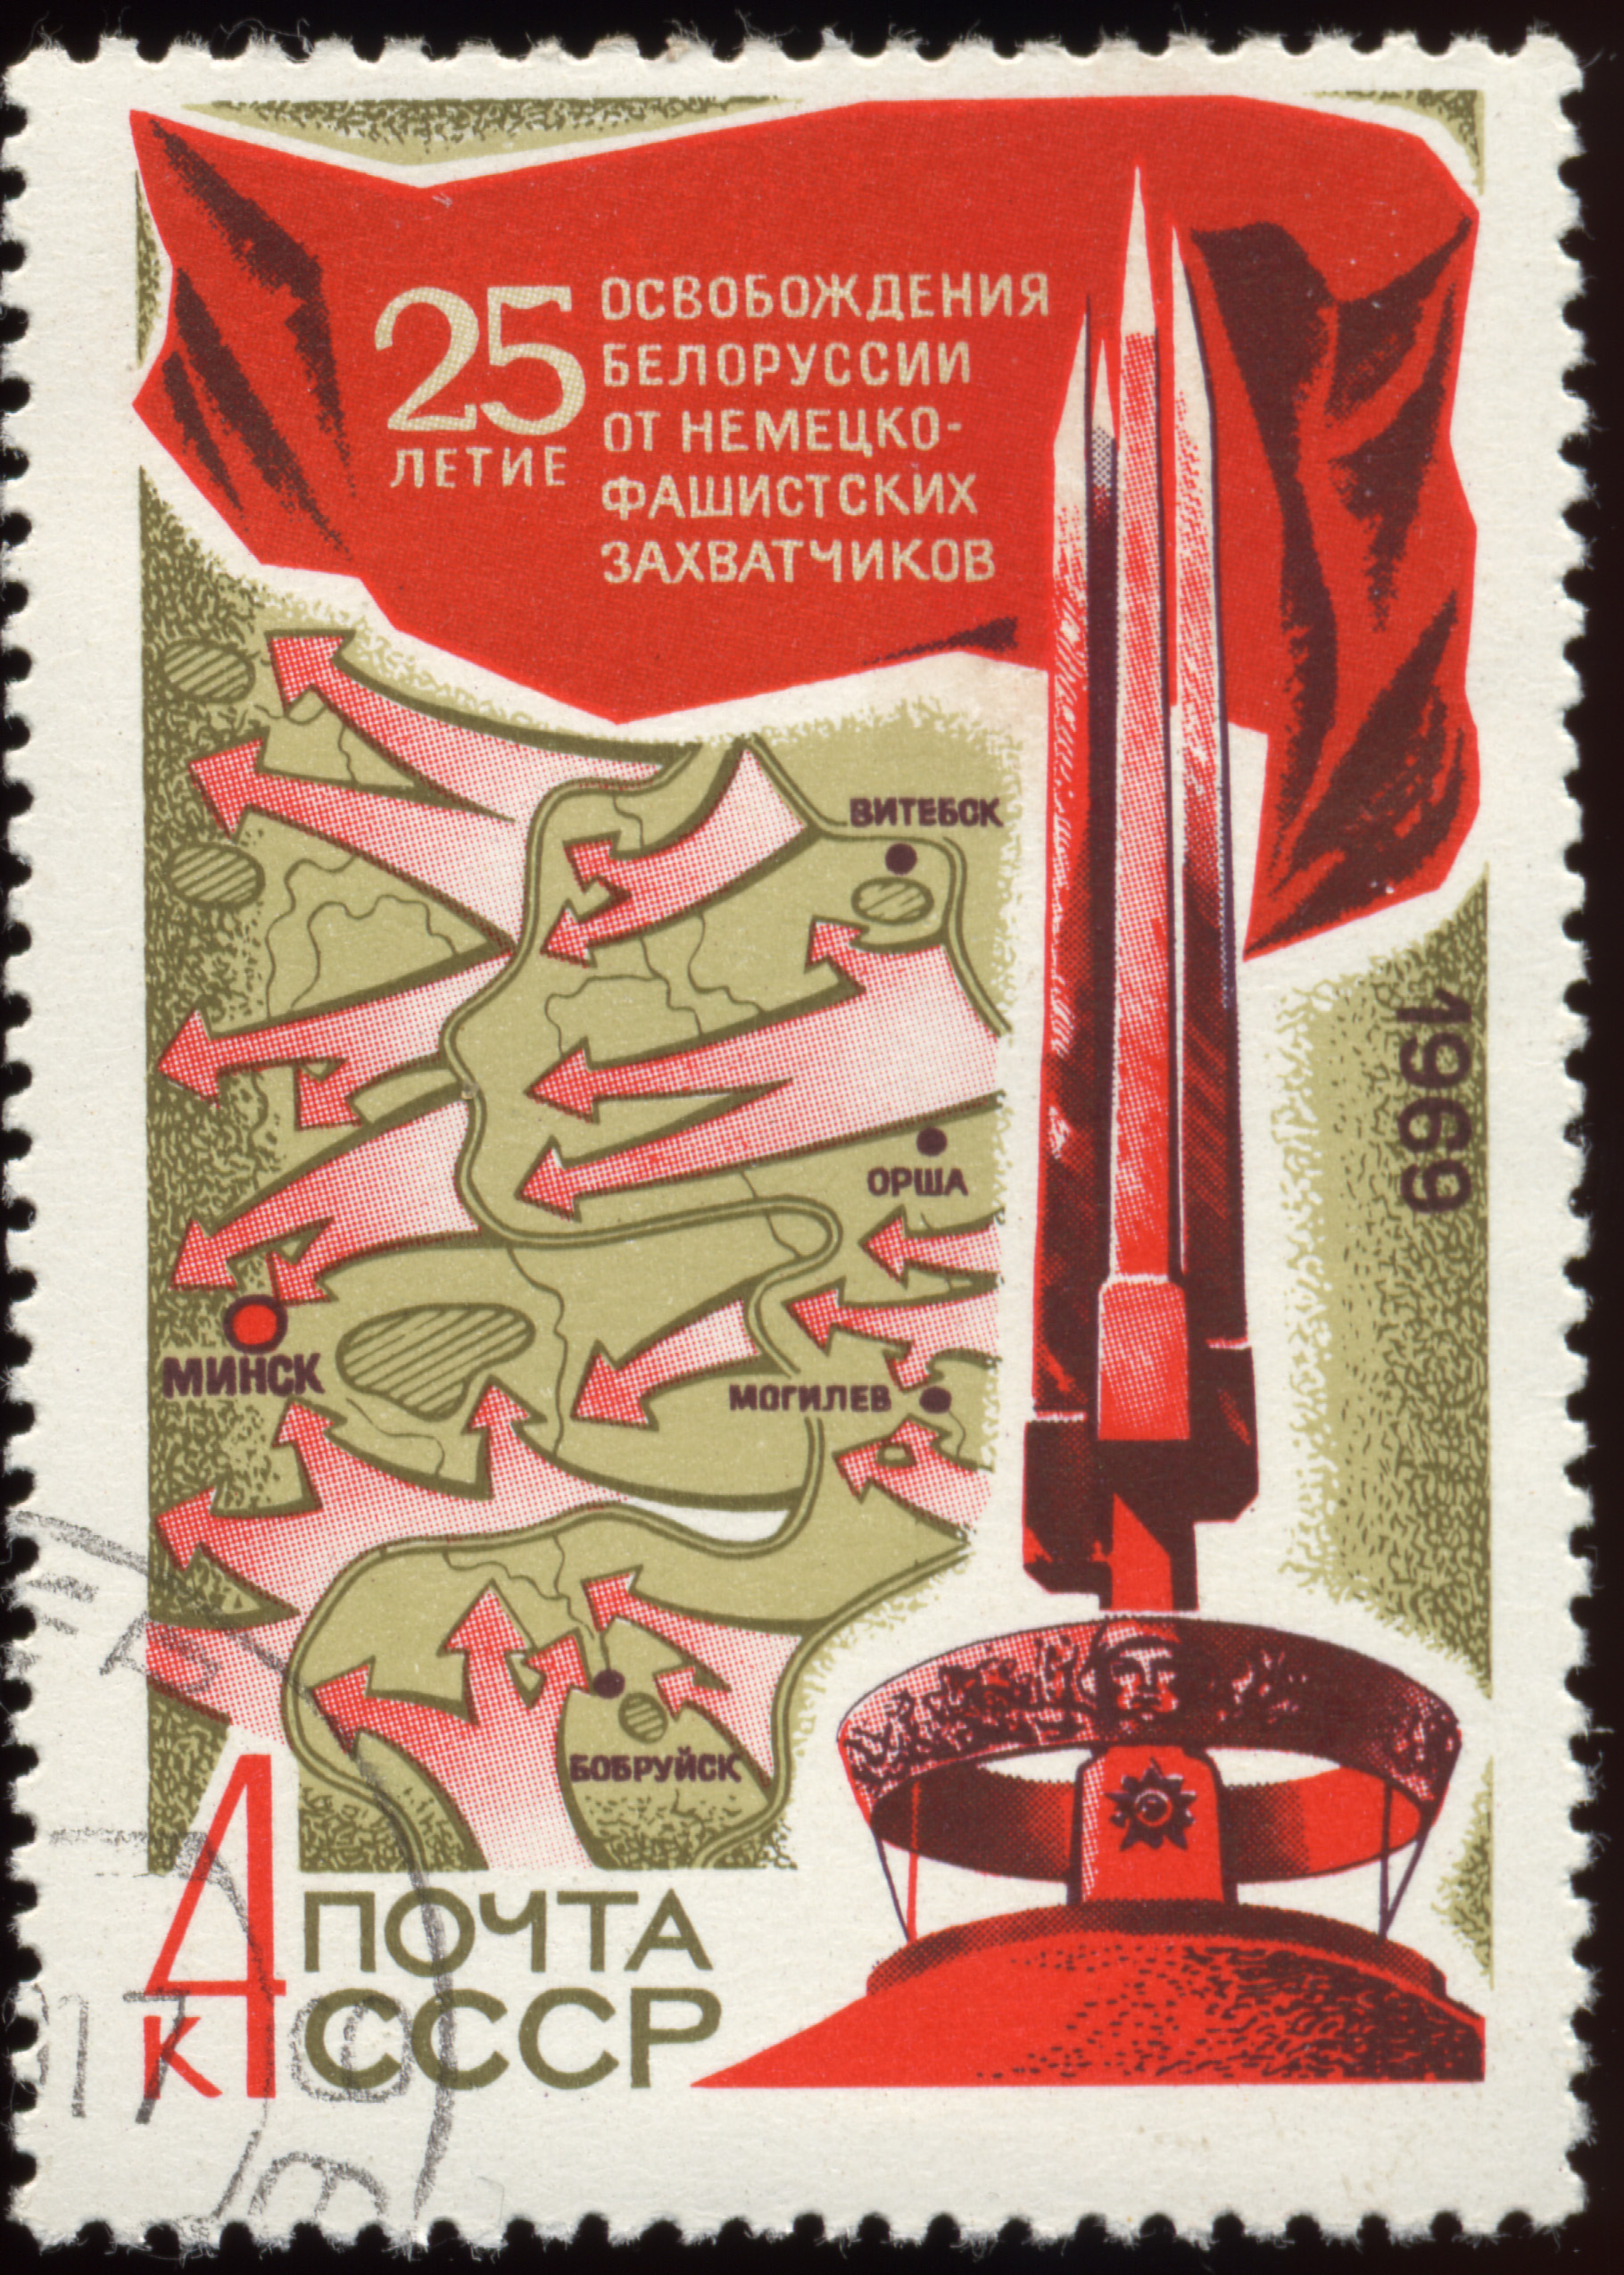 Soviet Union-1969-Stamp-0.04. 25 Years of Liberation of Belarus